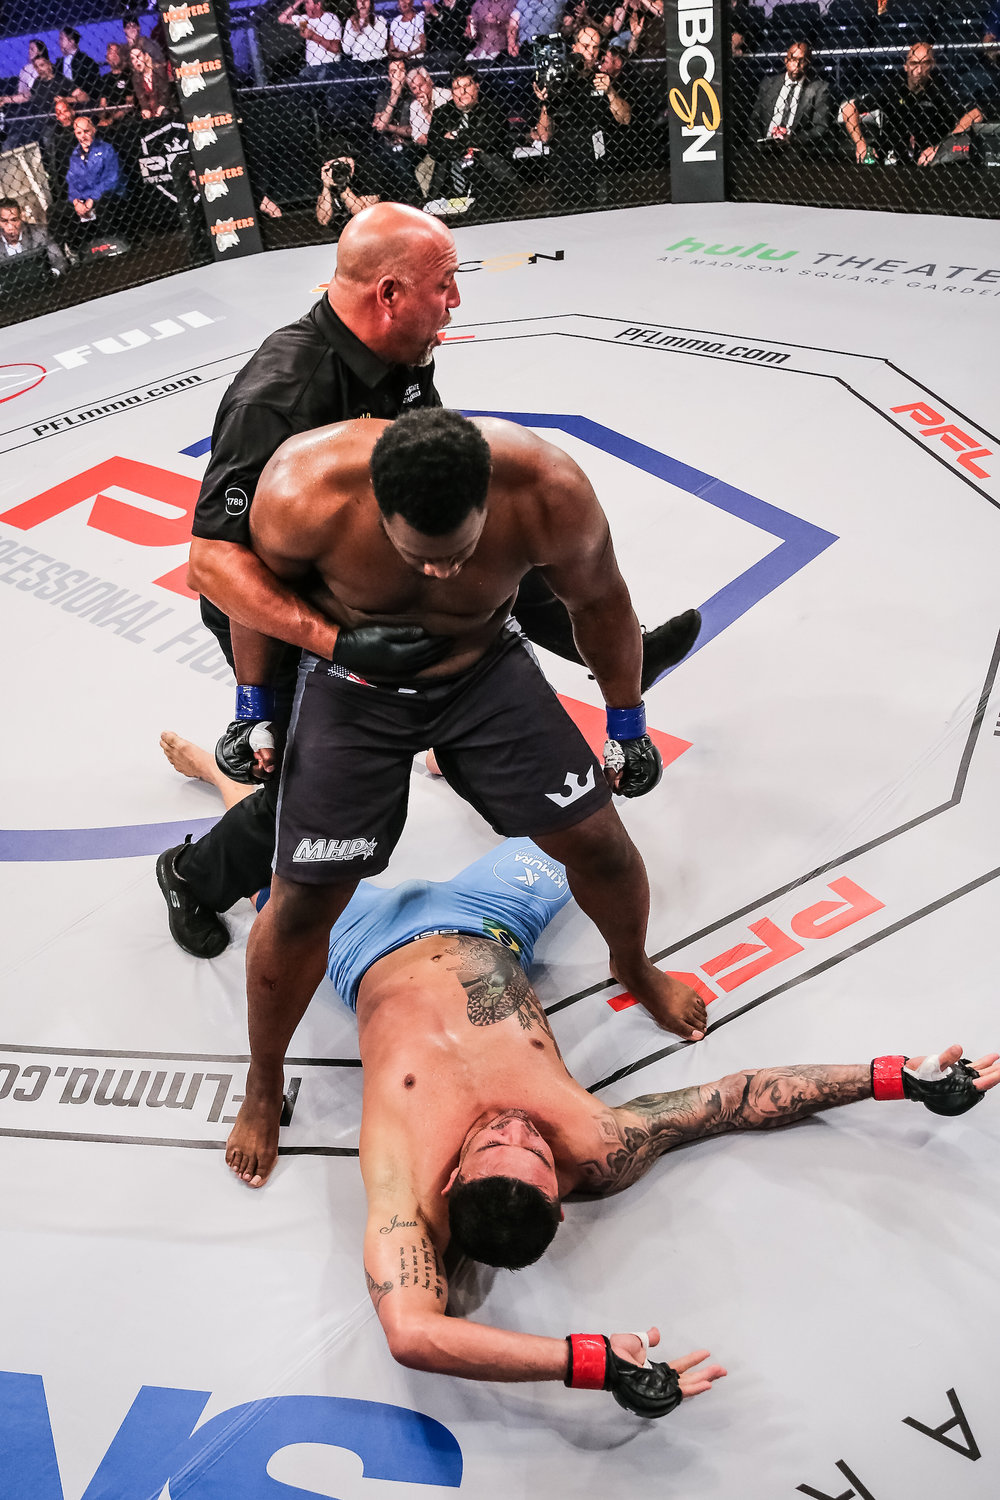 Kelvin Tiller stands victorious at PFL 1. New York, NY